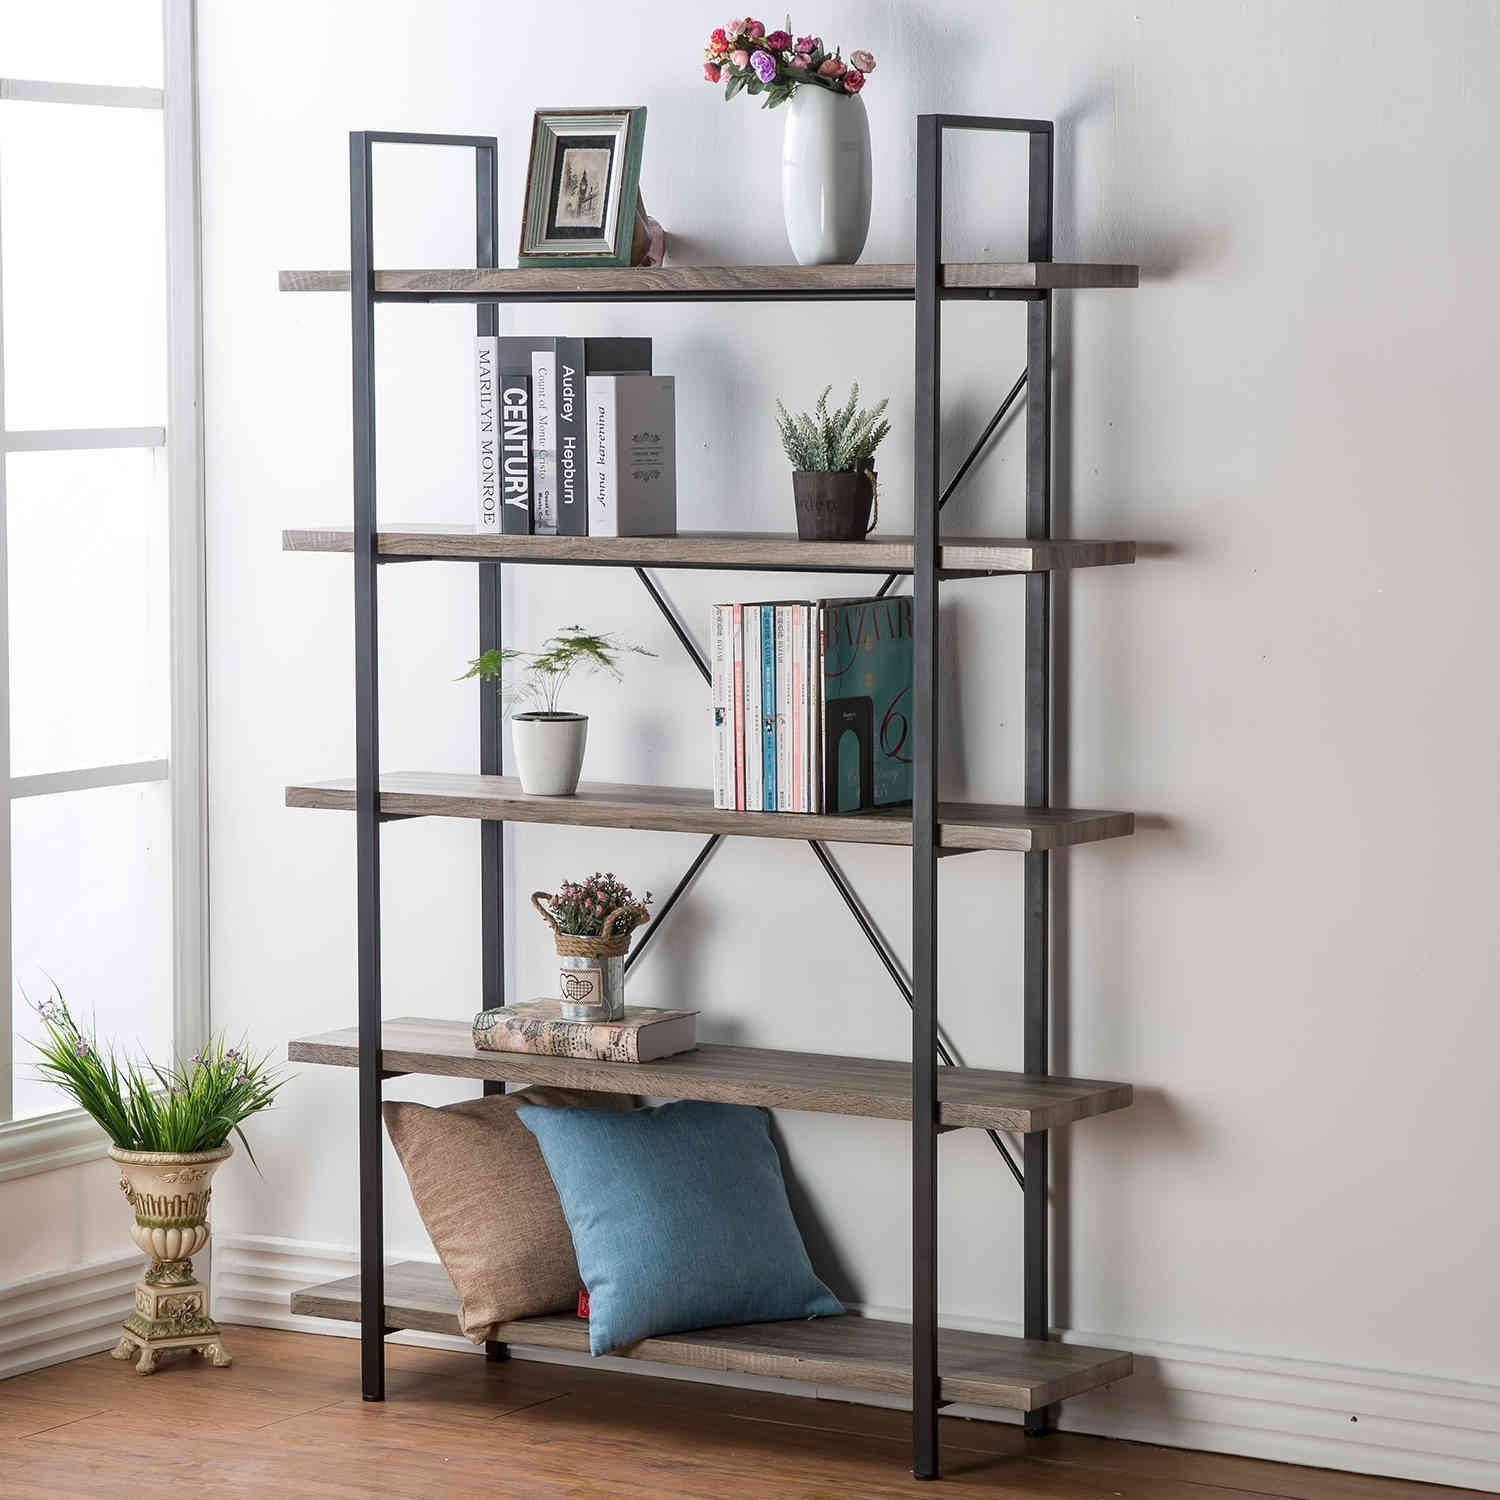 Amazoncom Hsh Furniture 5 Shelf Vintage Industrial Rustic Bookshelf, Wood And